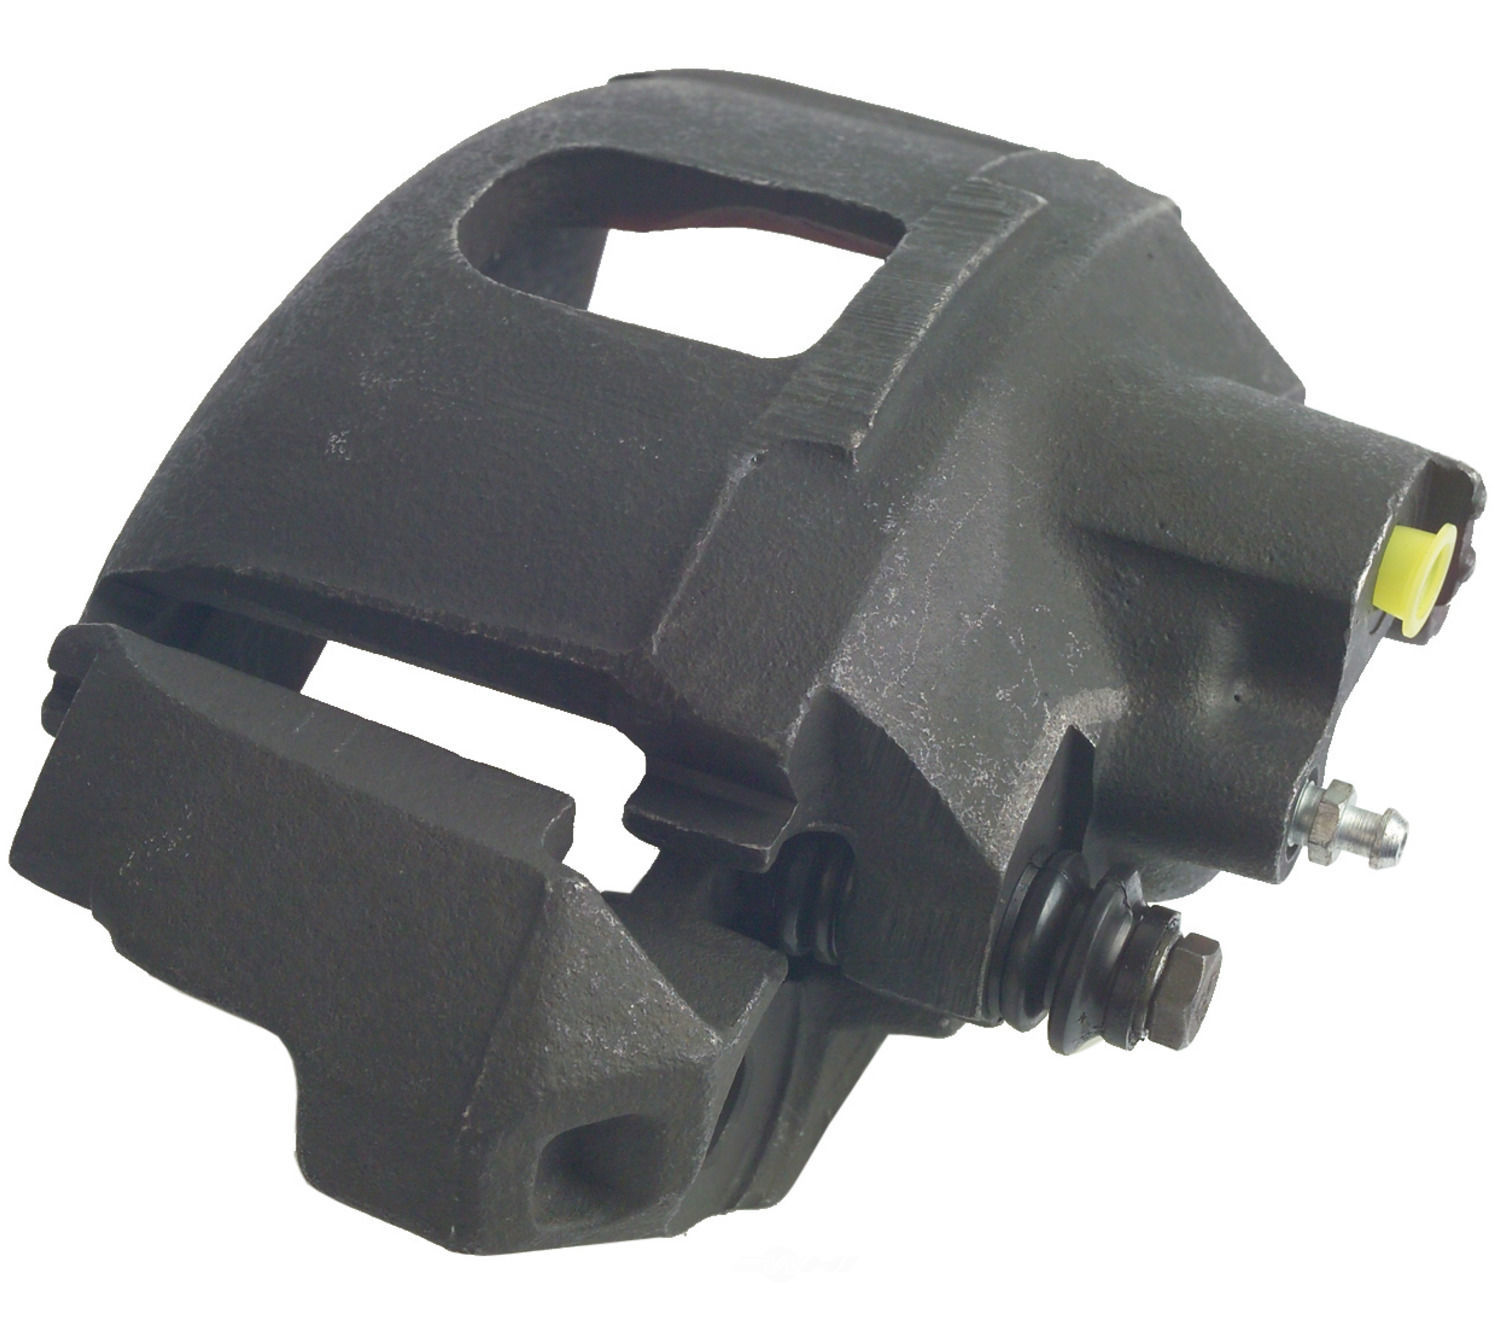 CARDONE REMAN - Unloaded Caliper W/bracket - A1C 18-B4367S